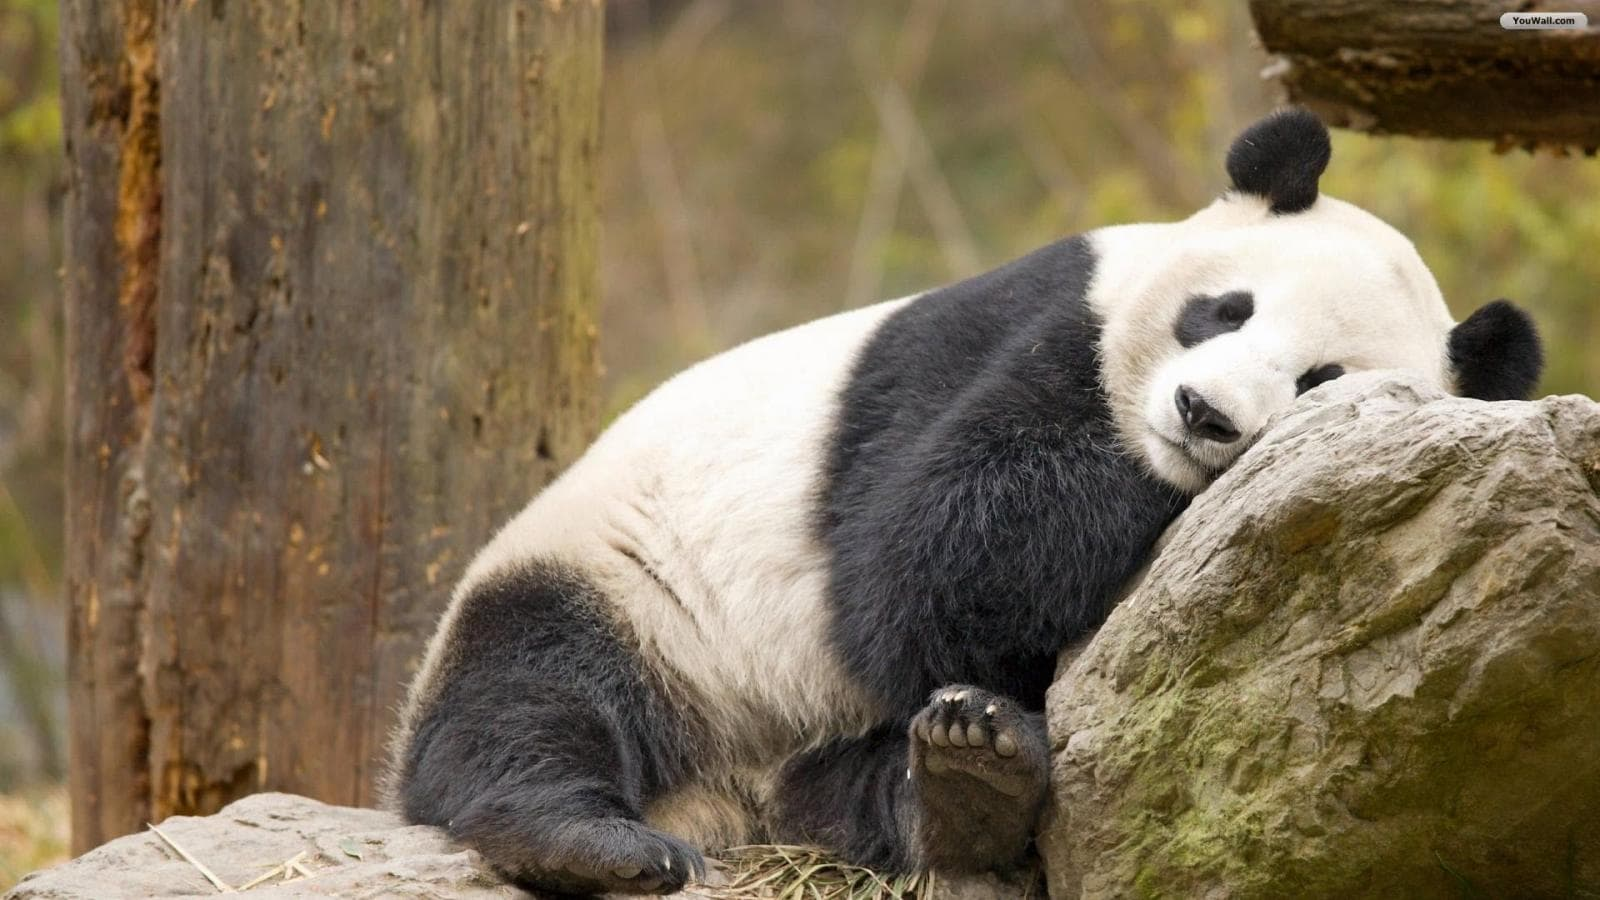 Panda full hd wallpapers